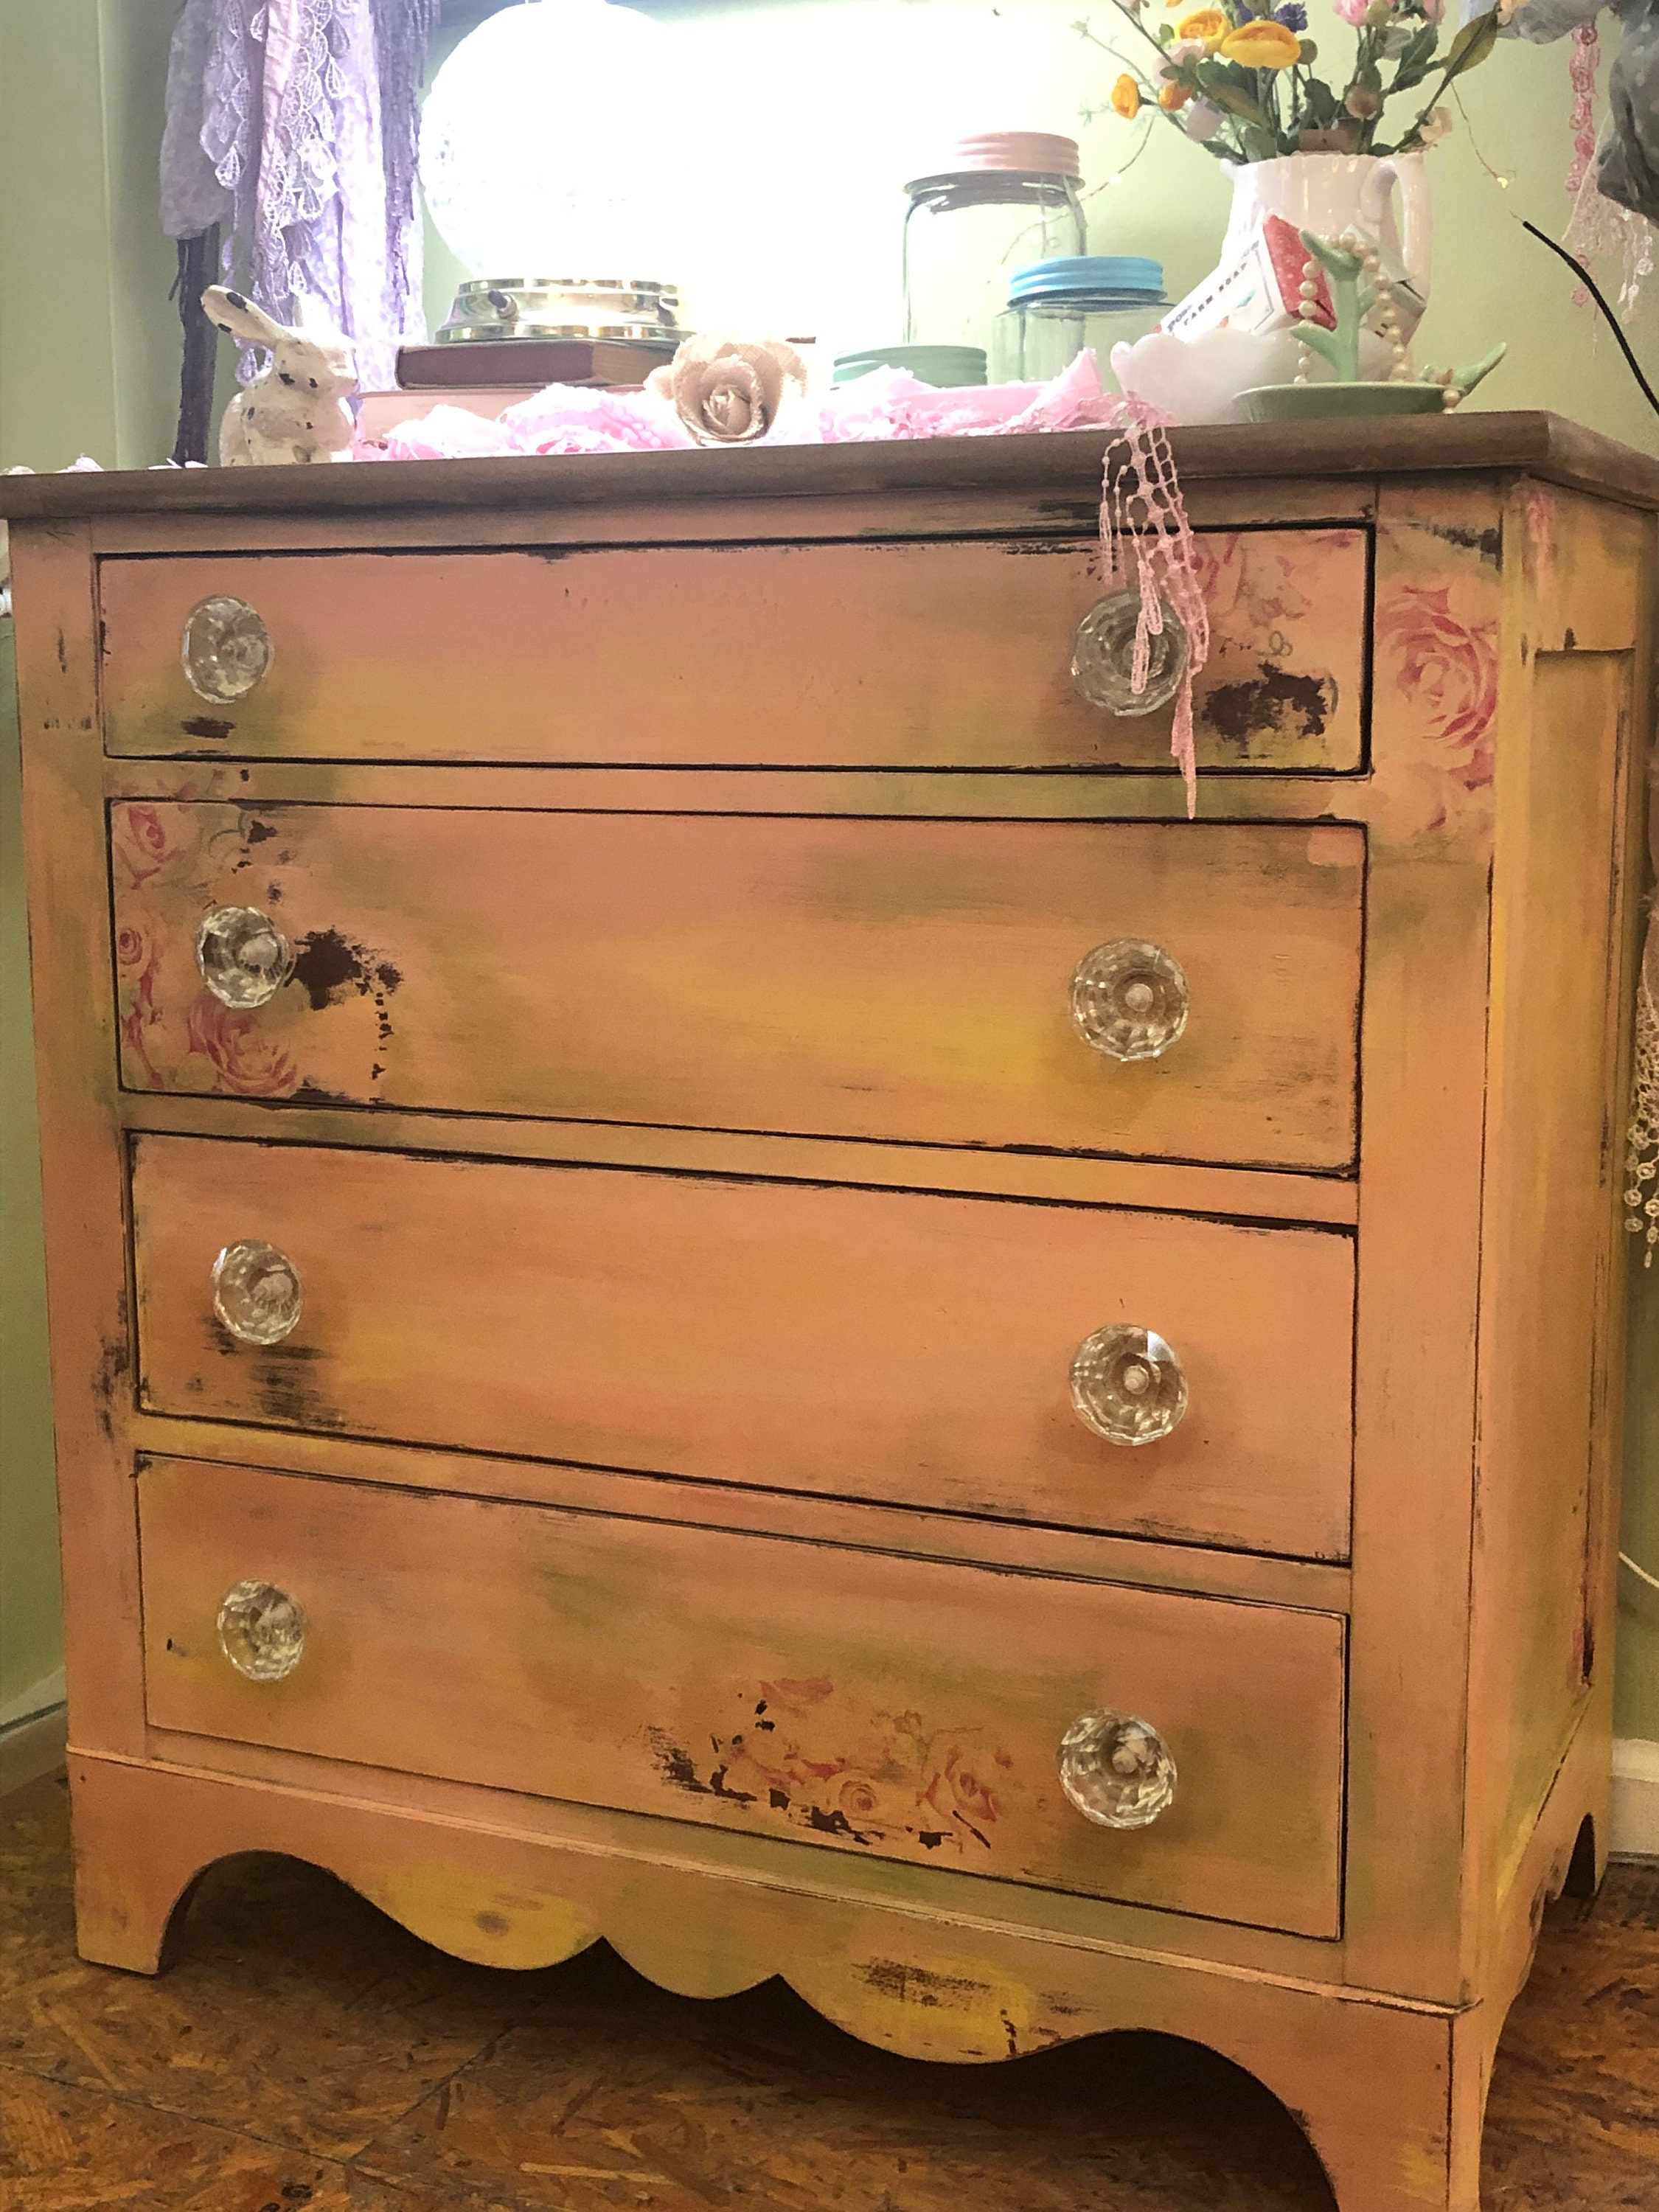 Anna Vintage Whimsical Painted And Decoupaged Shabby Chic Cottage Style Small Chest